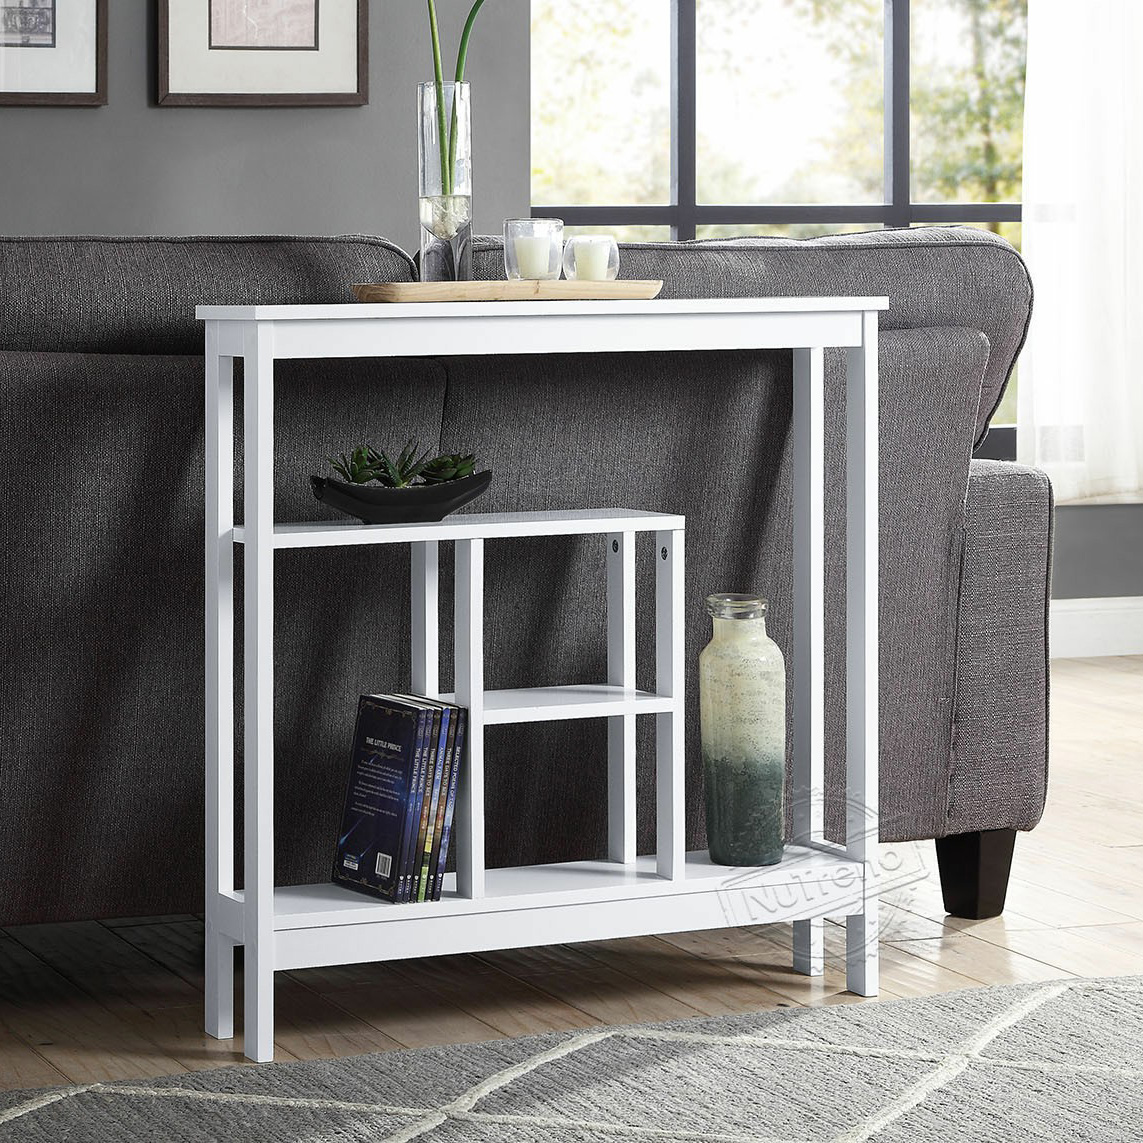 Slim Console Table Narrow Storage Shelf for Small Spaces 203503